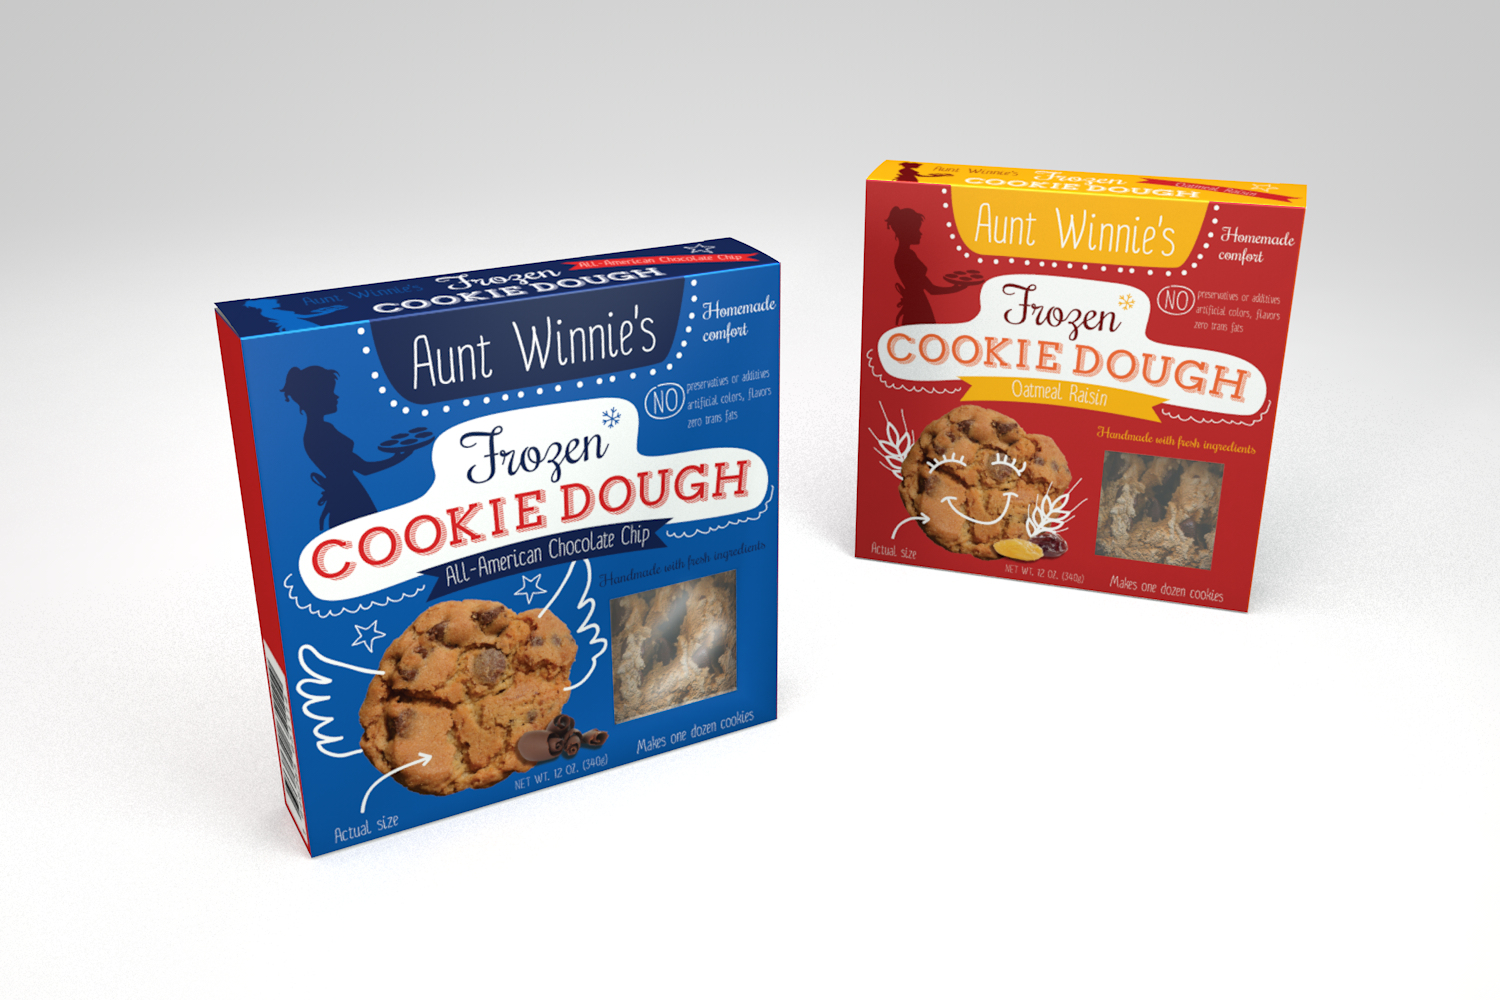 Create a commercial package for frozen, handmade cookie dough